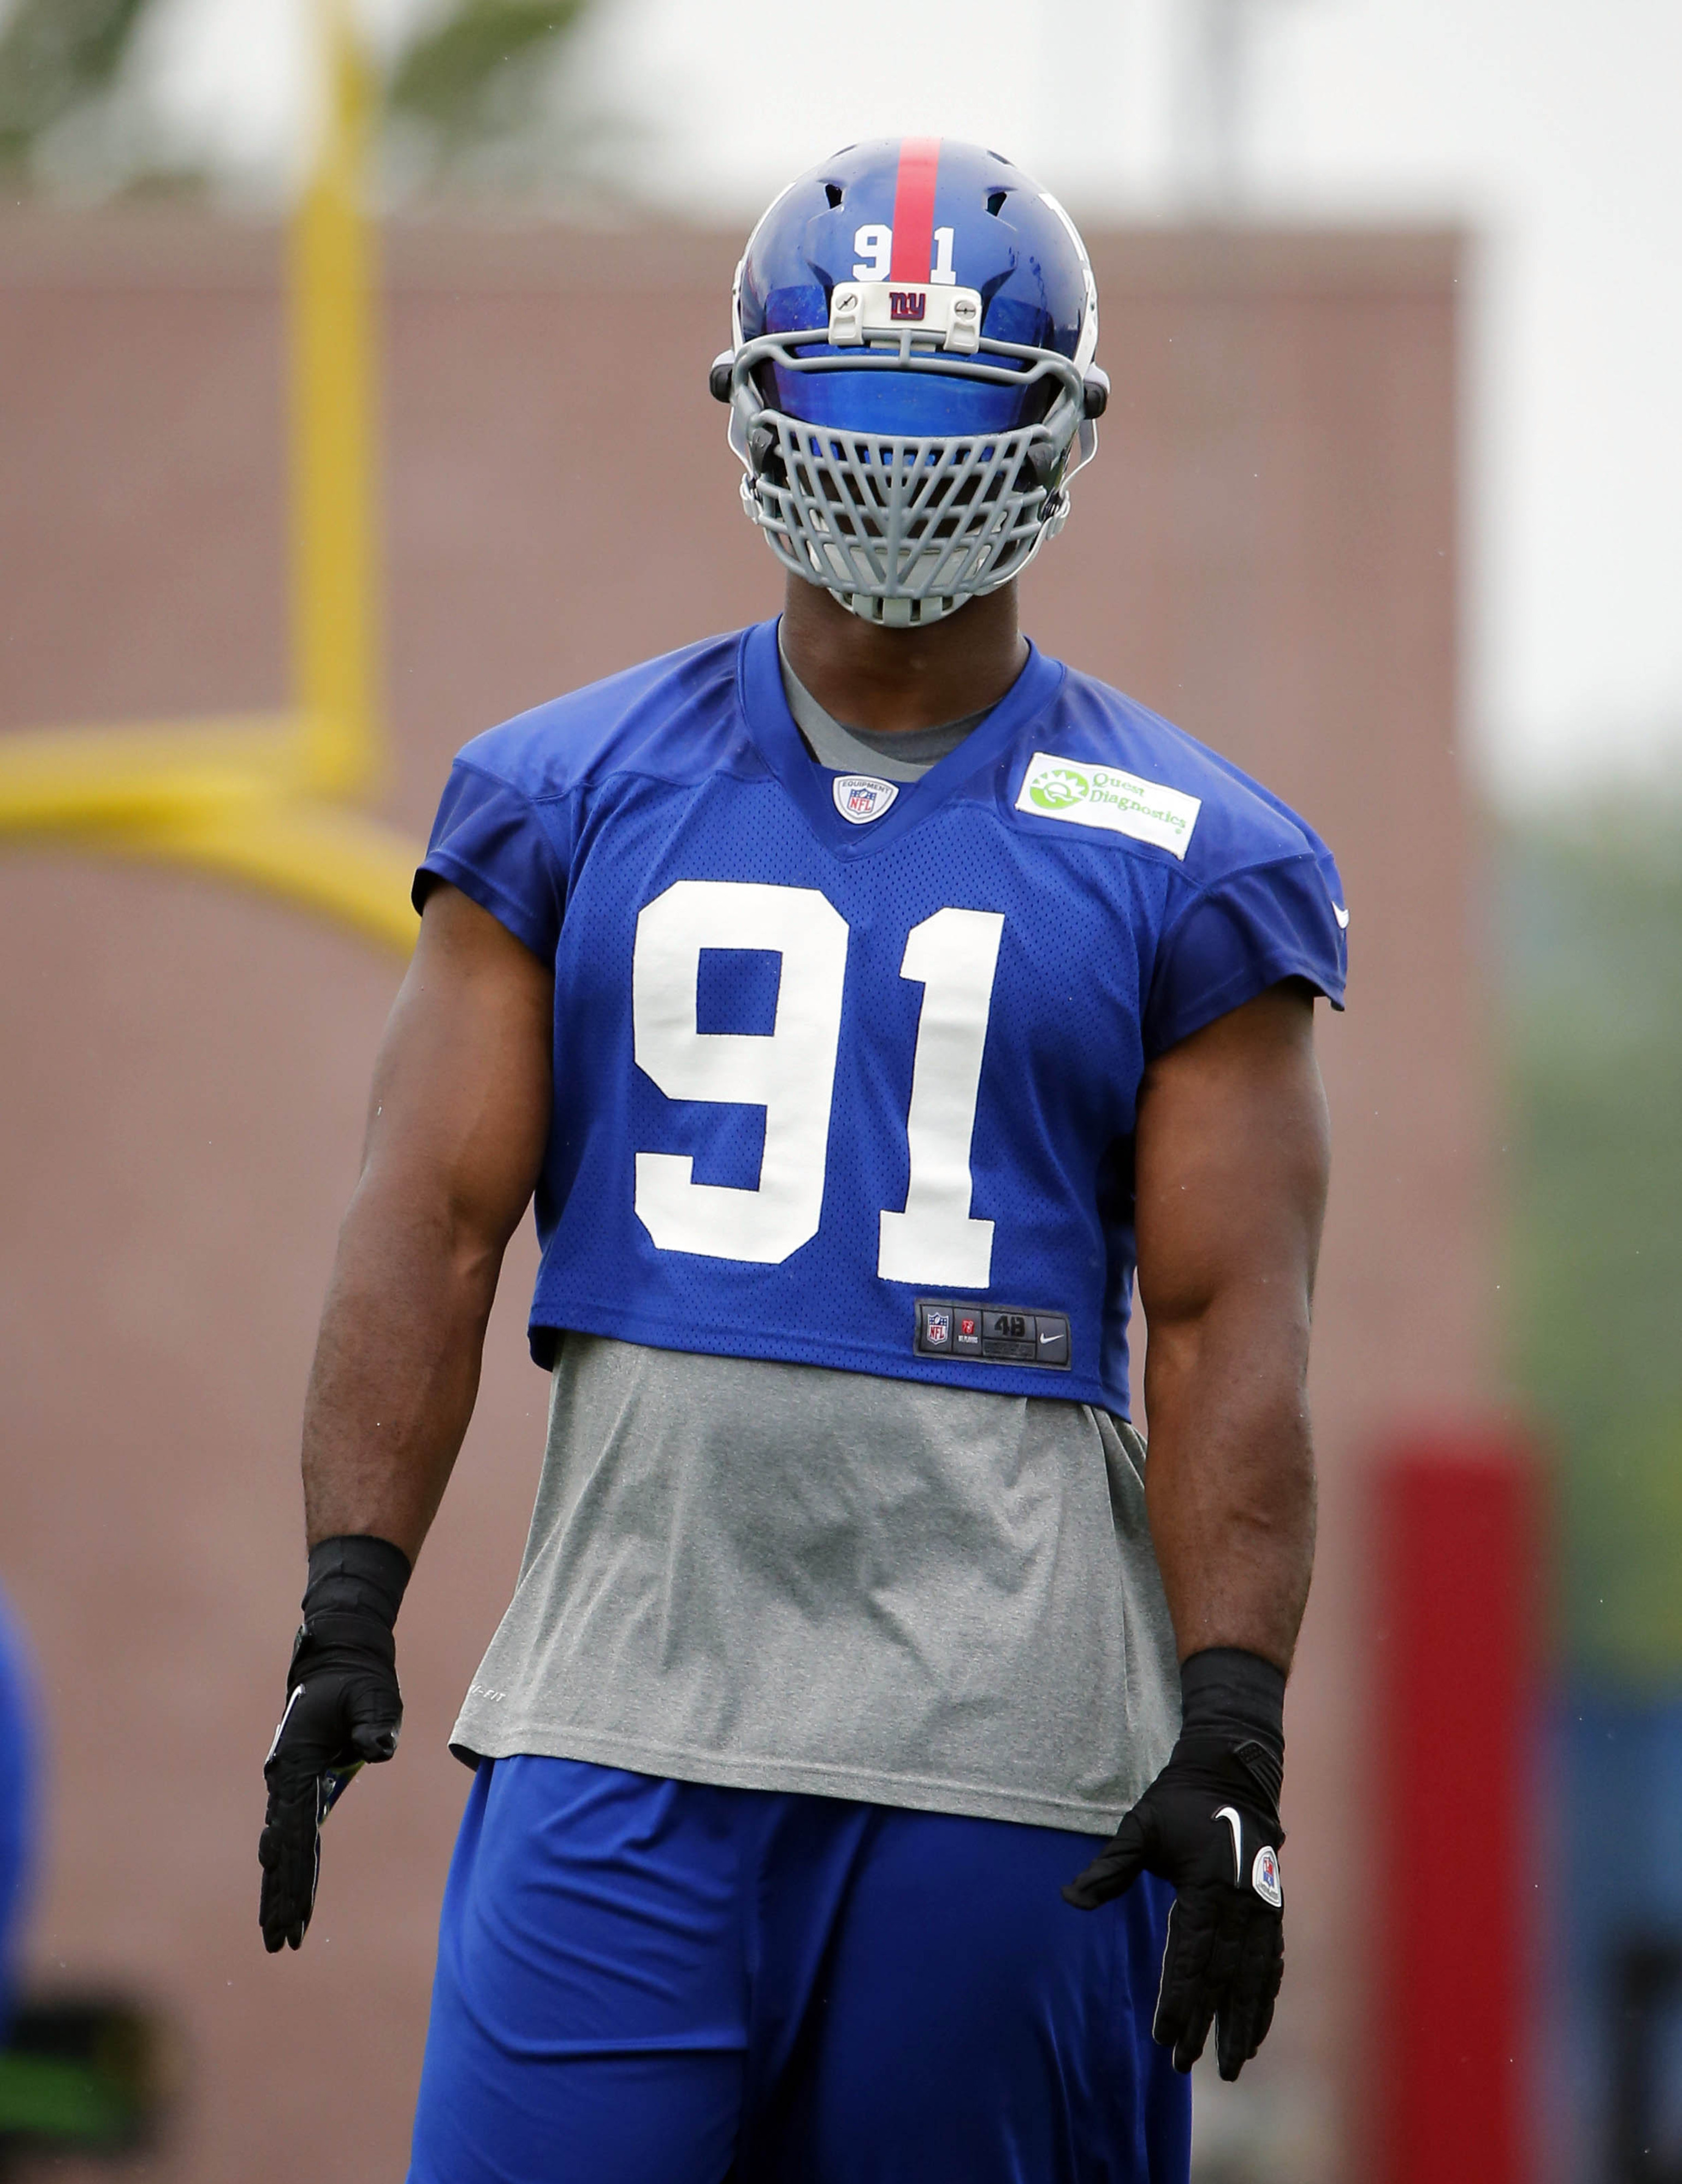 Justin Tuck exempt from NFL's face mask changes